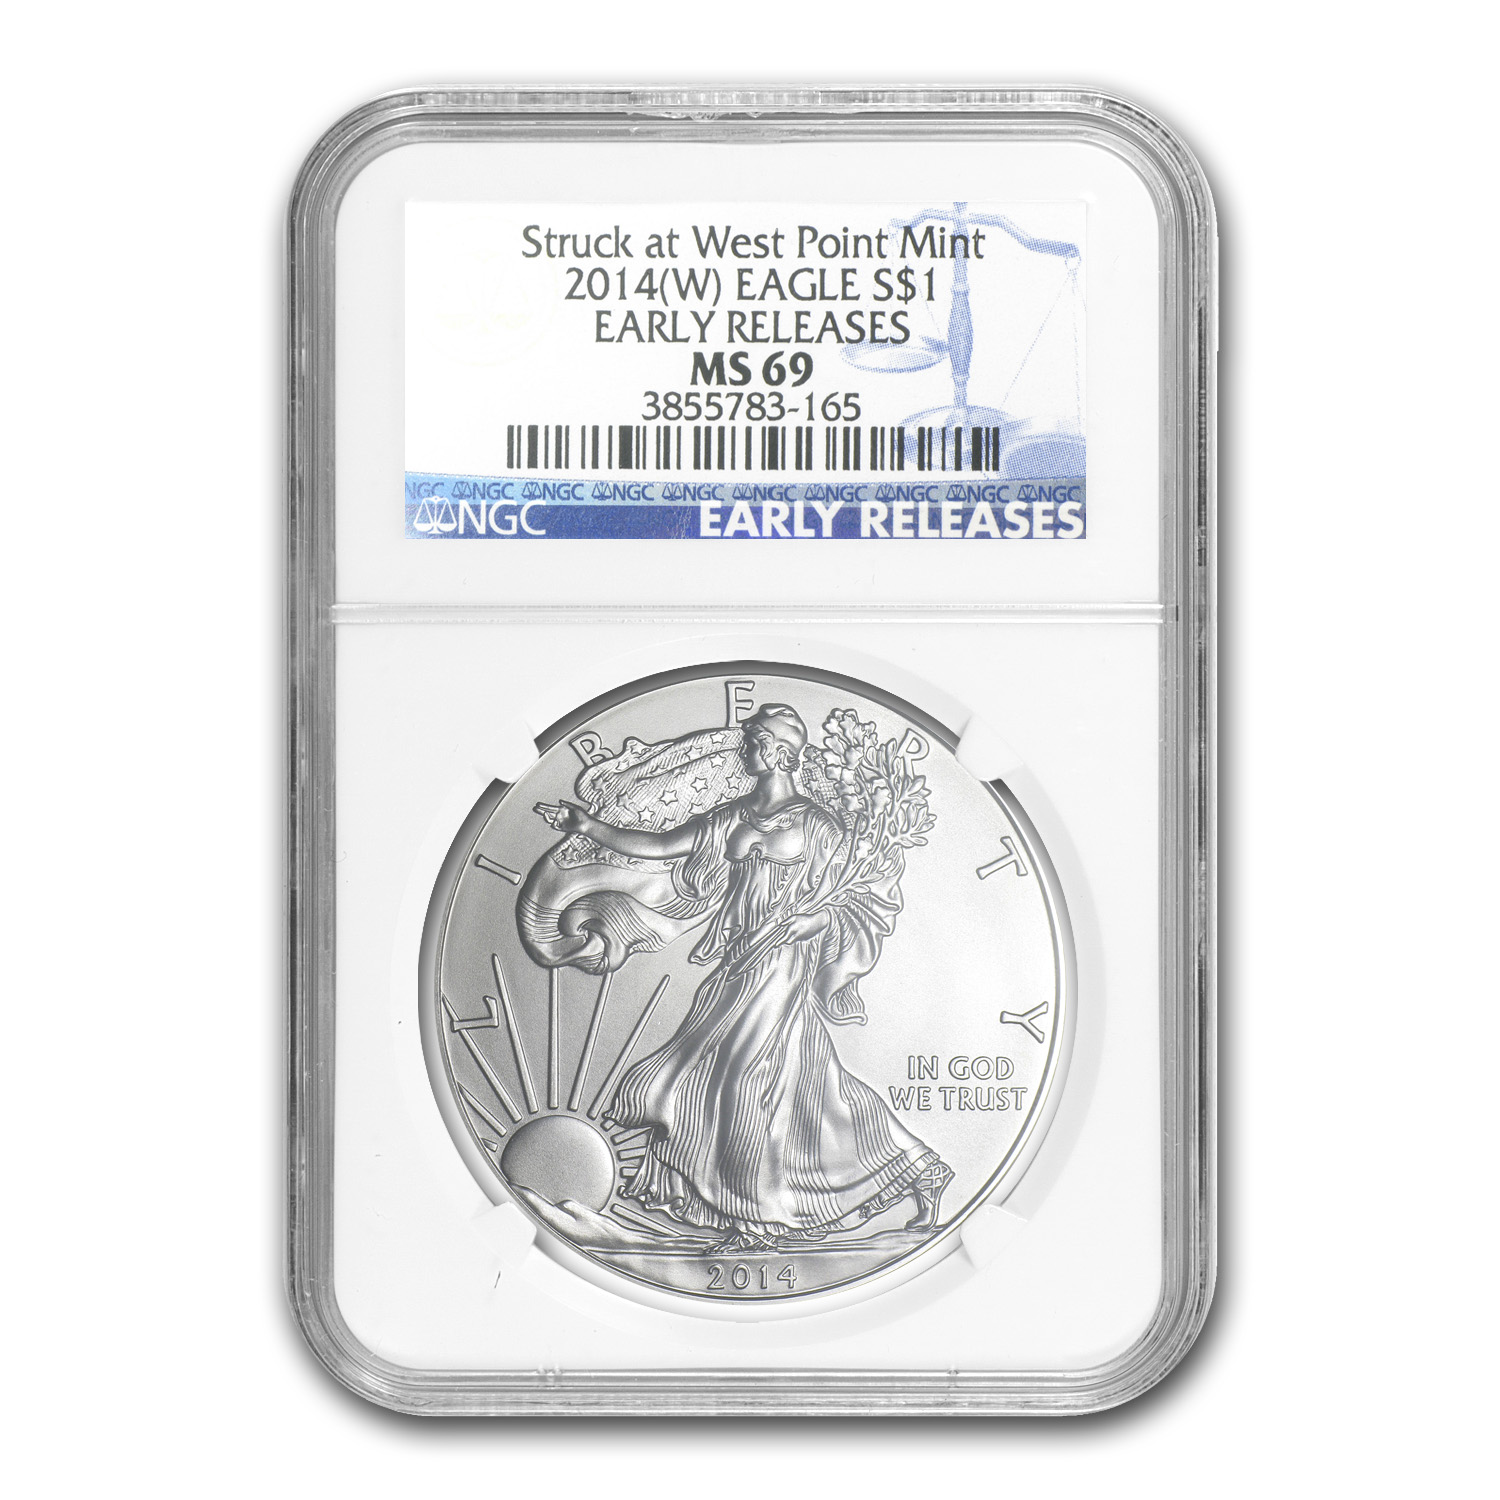 2014 (W) Silver American Eagle MS-69 NGC Early Release